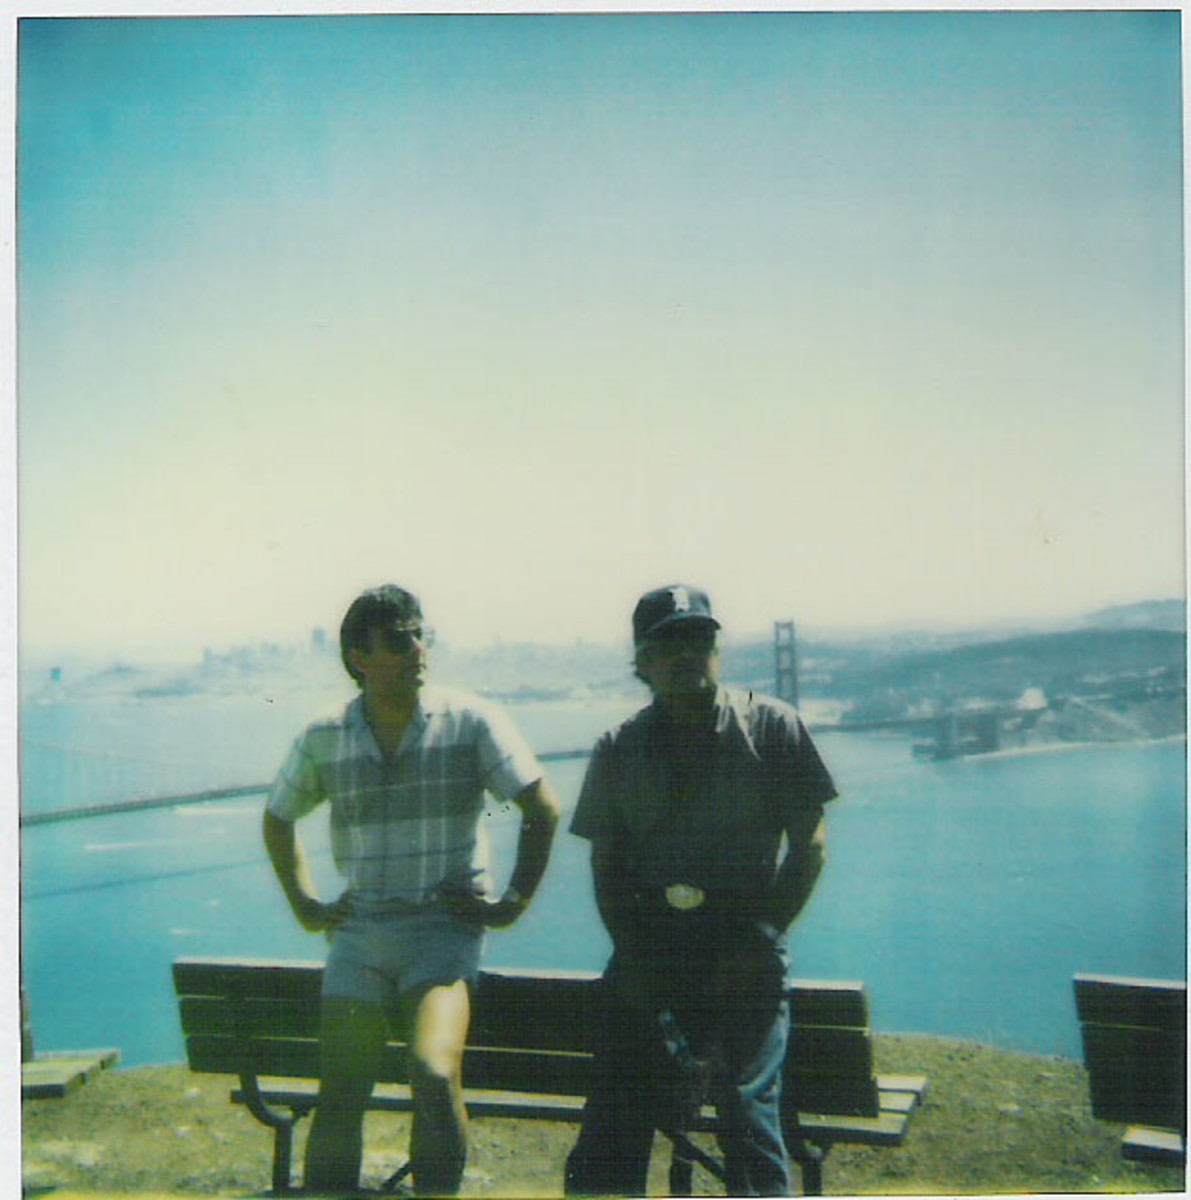 Me and my dad at the Marin Headlands with San Francisco in the background